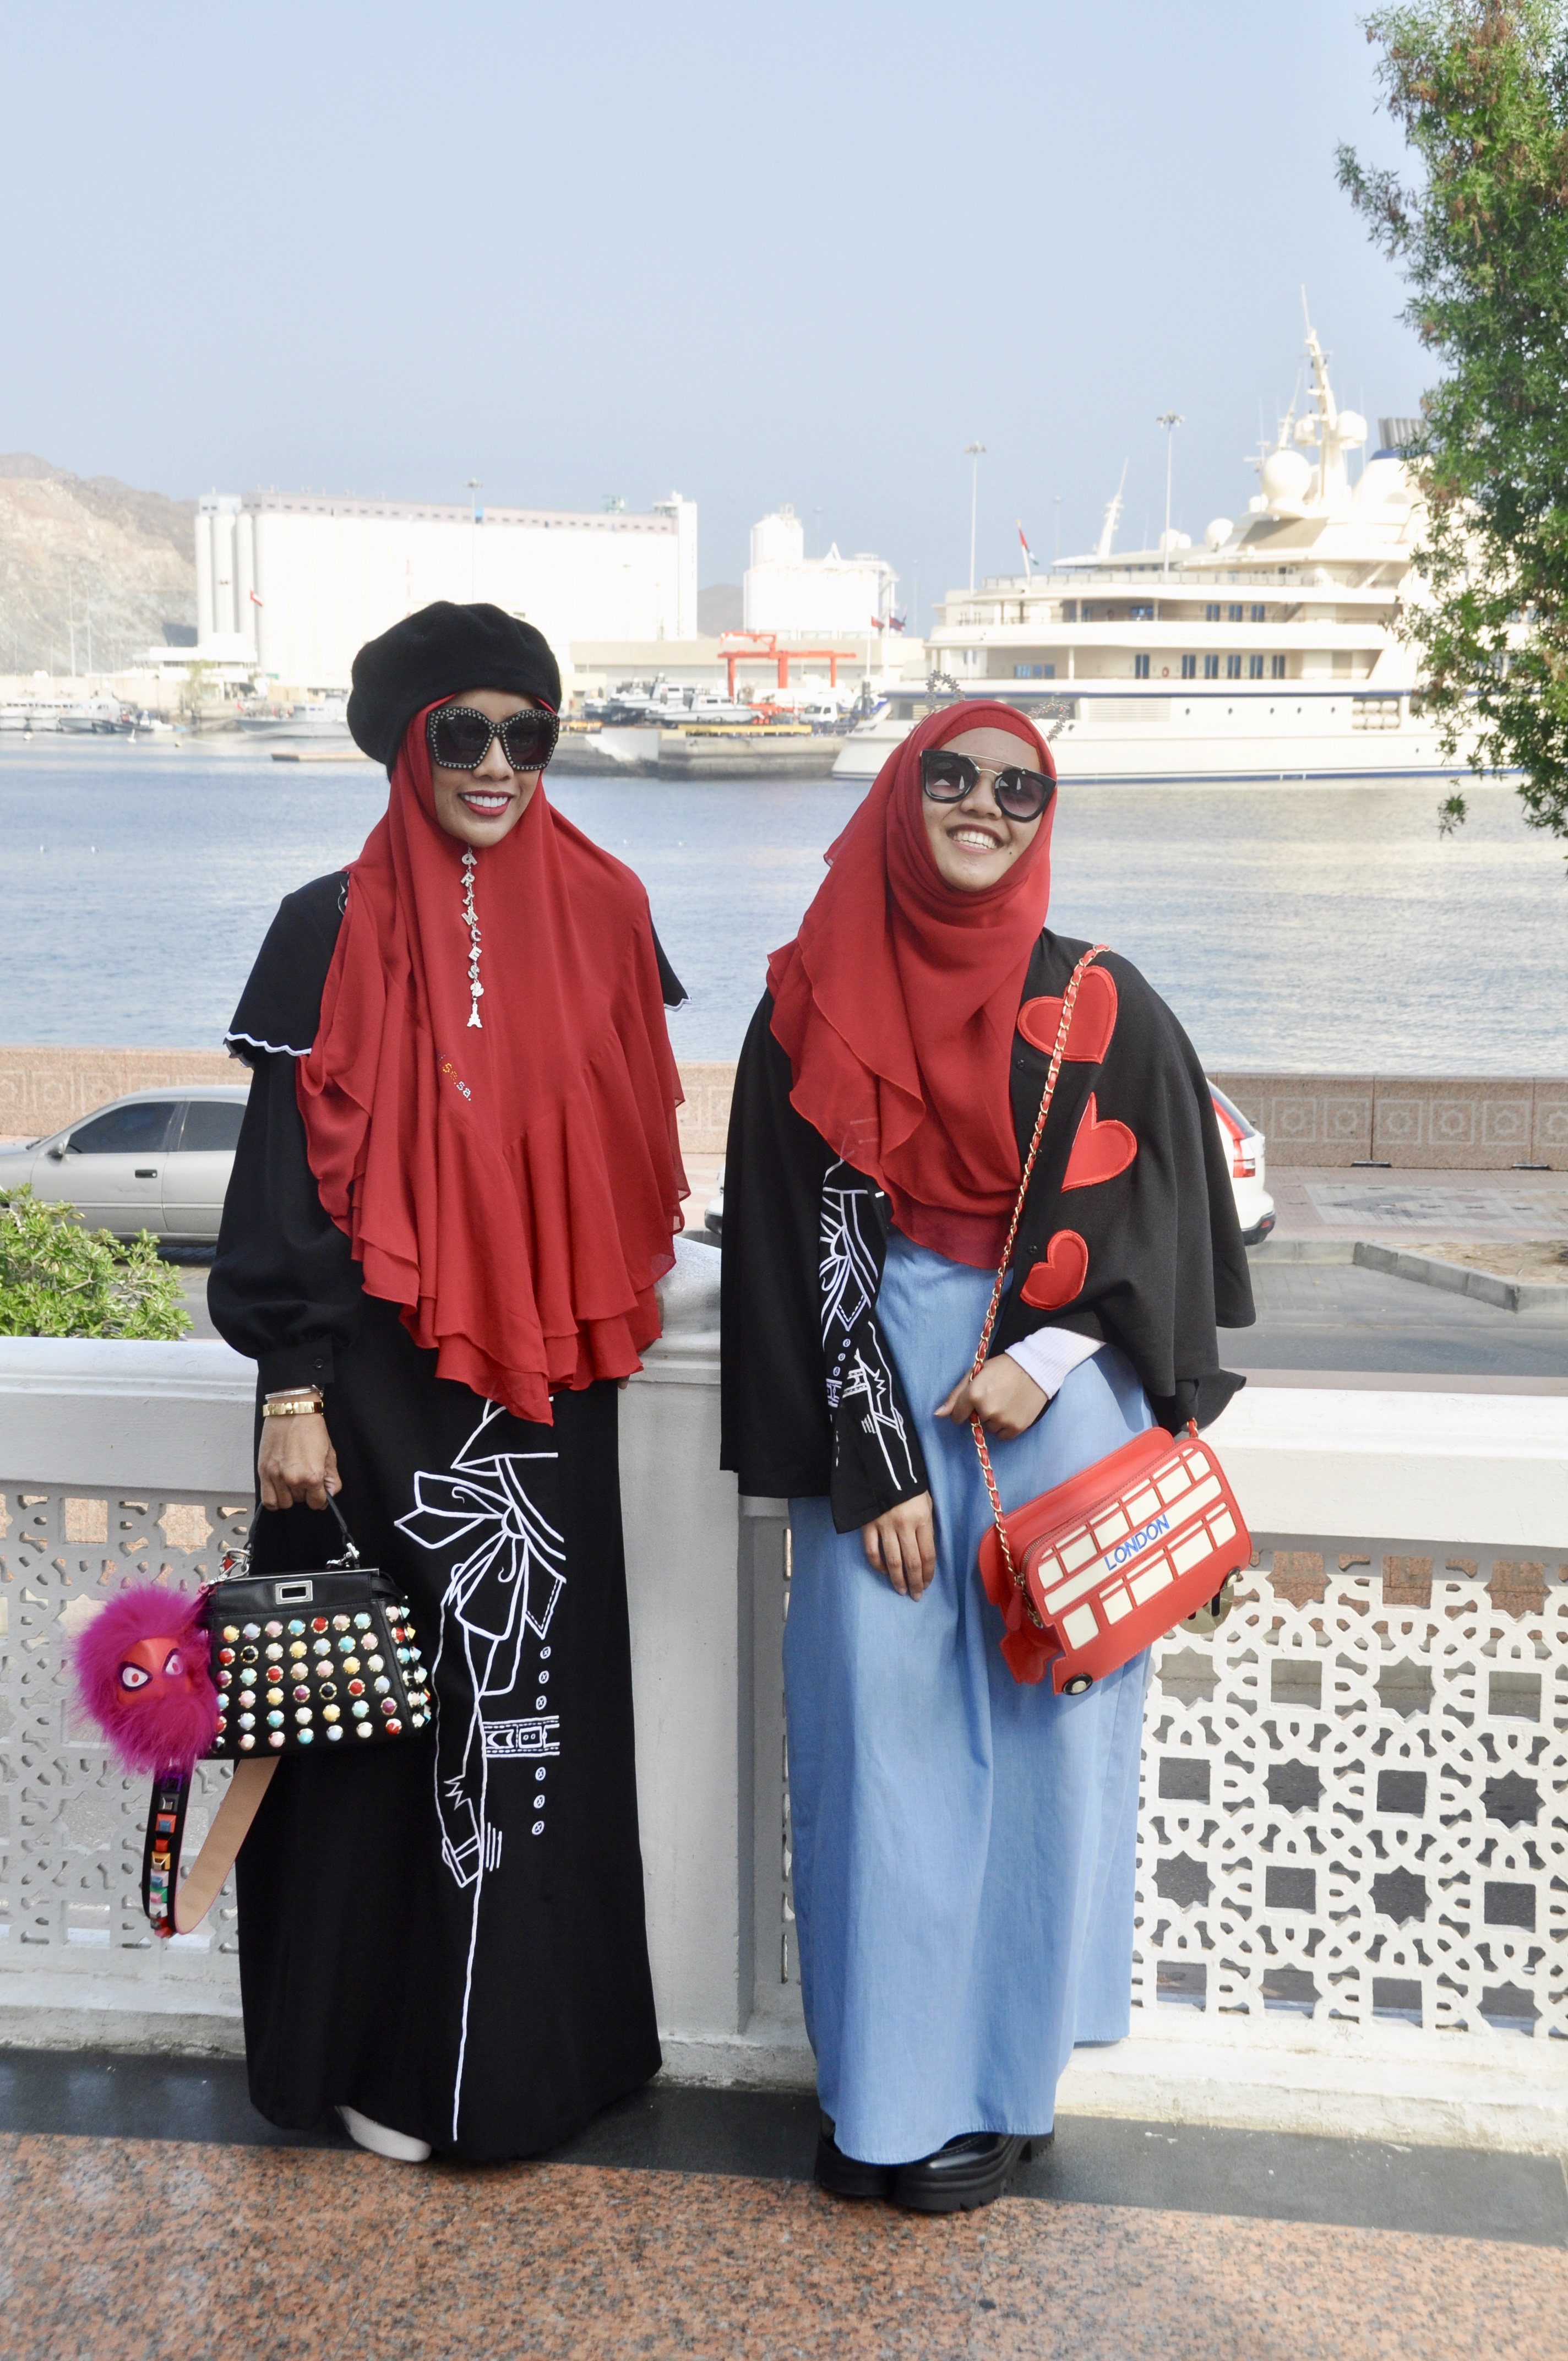 helloconchita conchita mom daughter hijab hijaber fashion style sunshine red